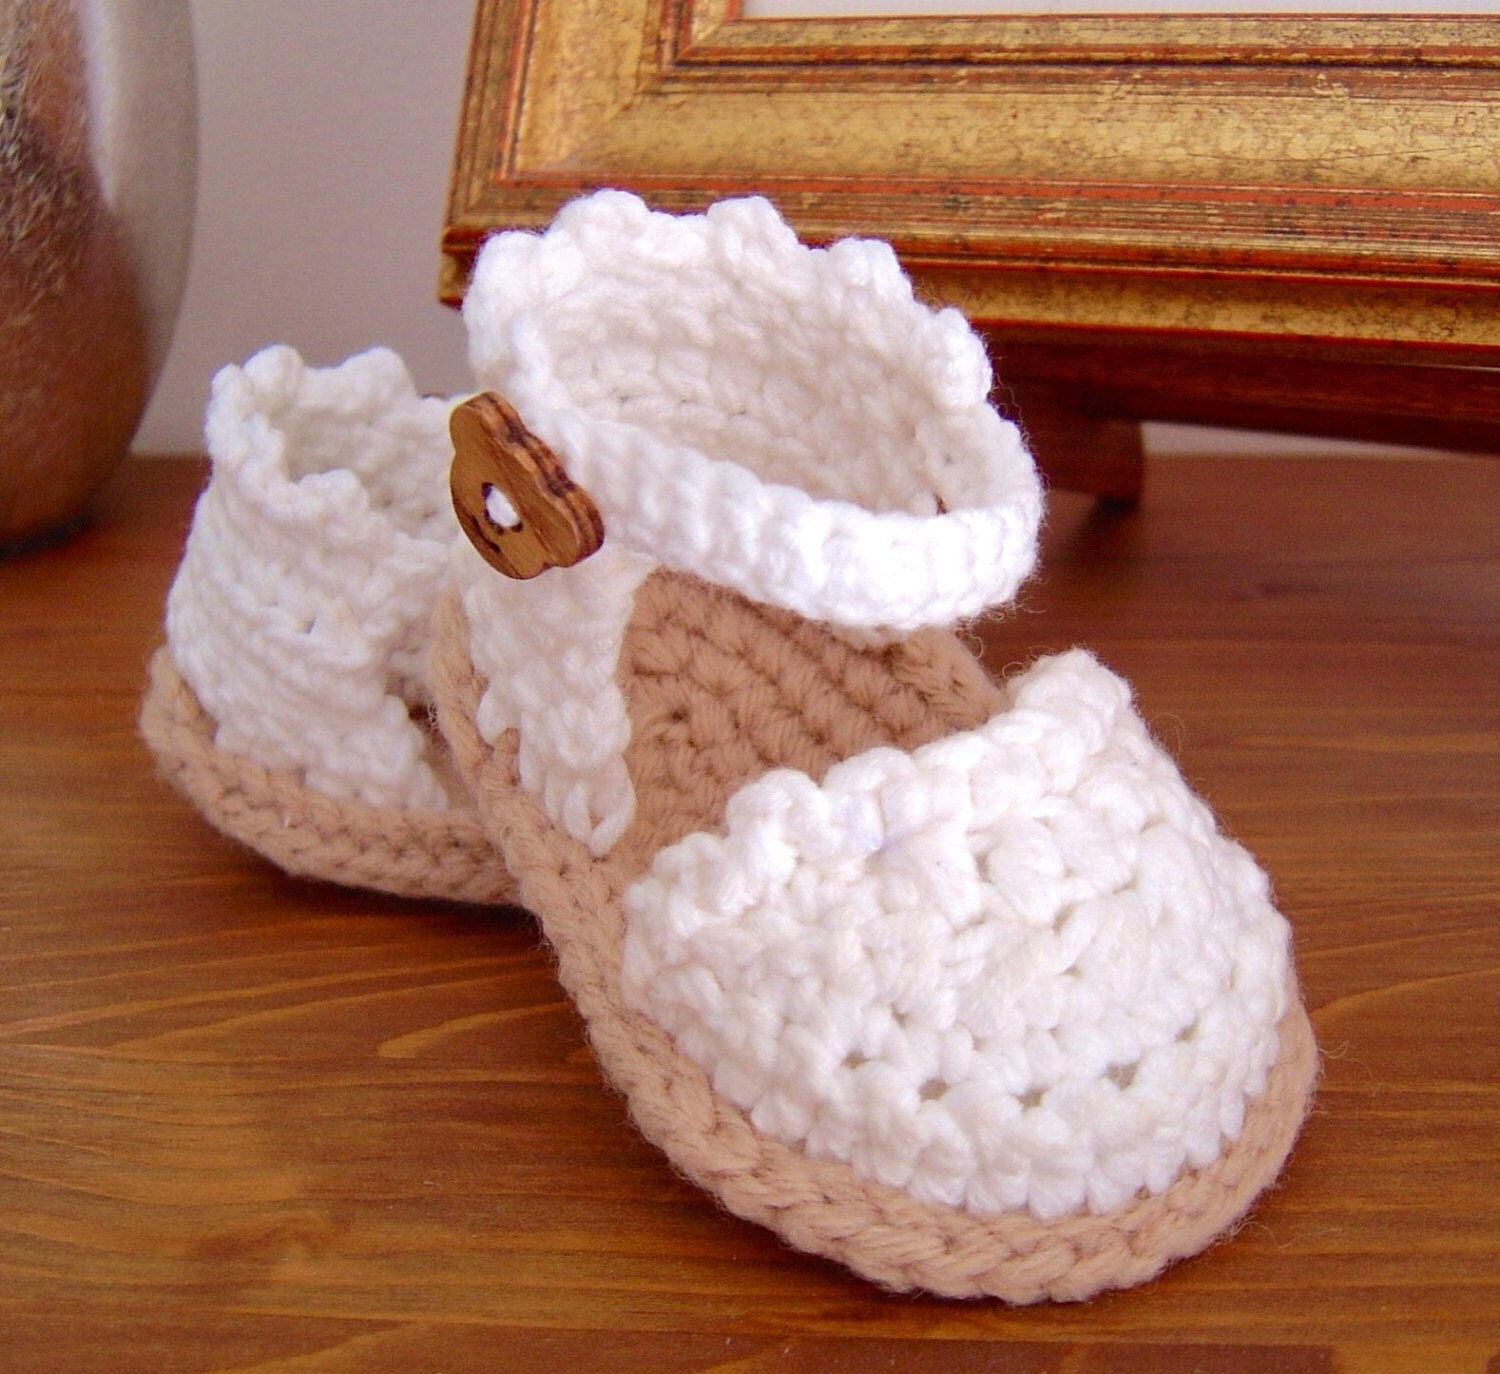 Crochet pattern baby espadrille sandals instant download baby crochet pattern baby espadrille sandals instant download baby shoes pattern photo tutorial bankloansurffo Images